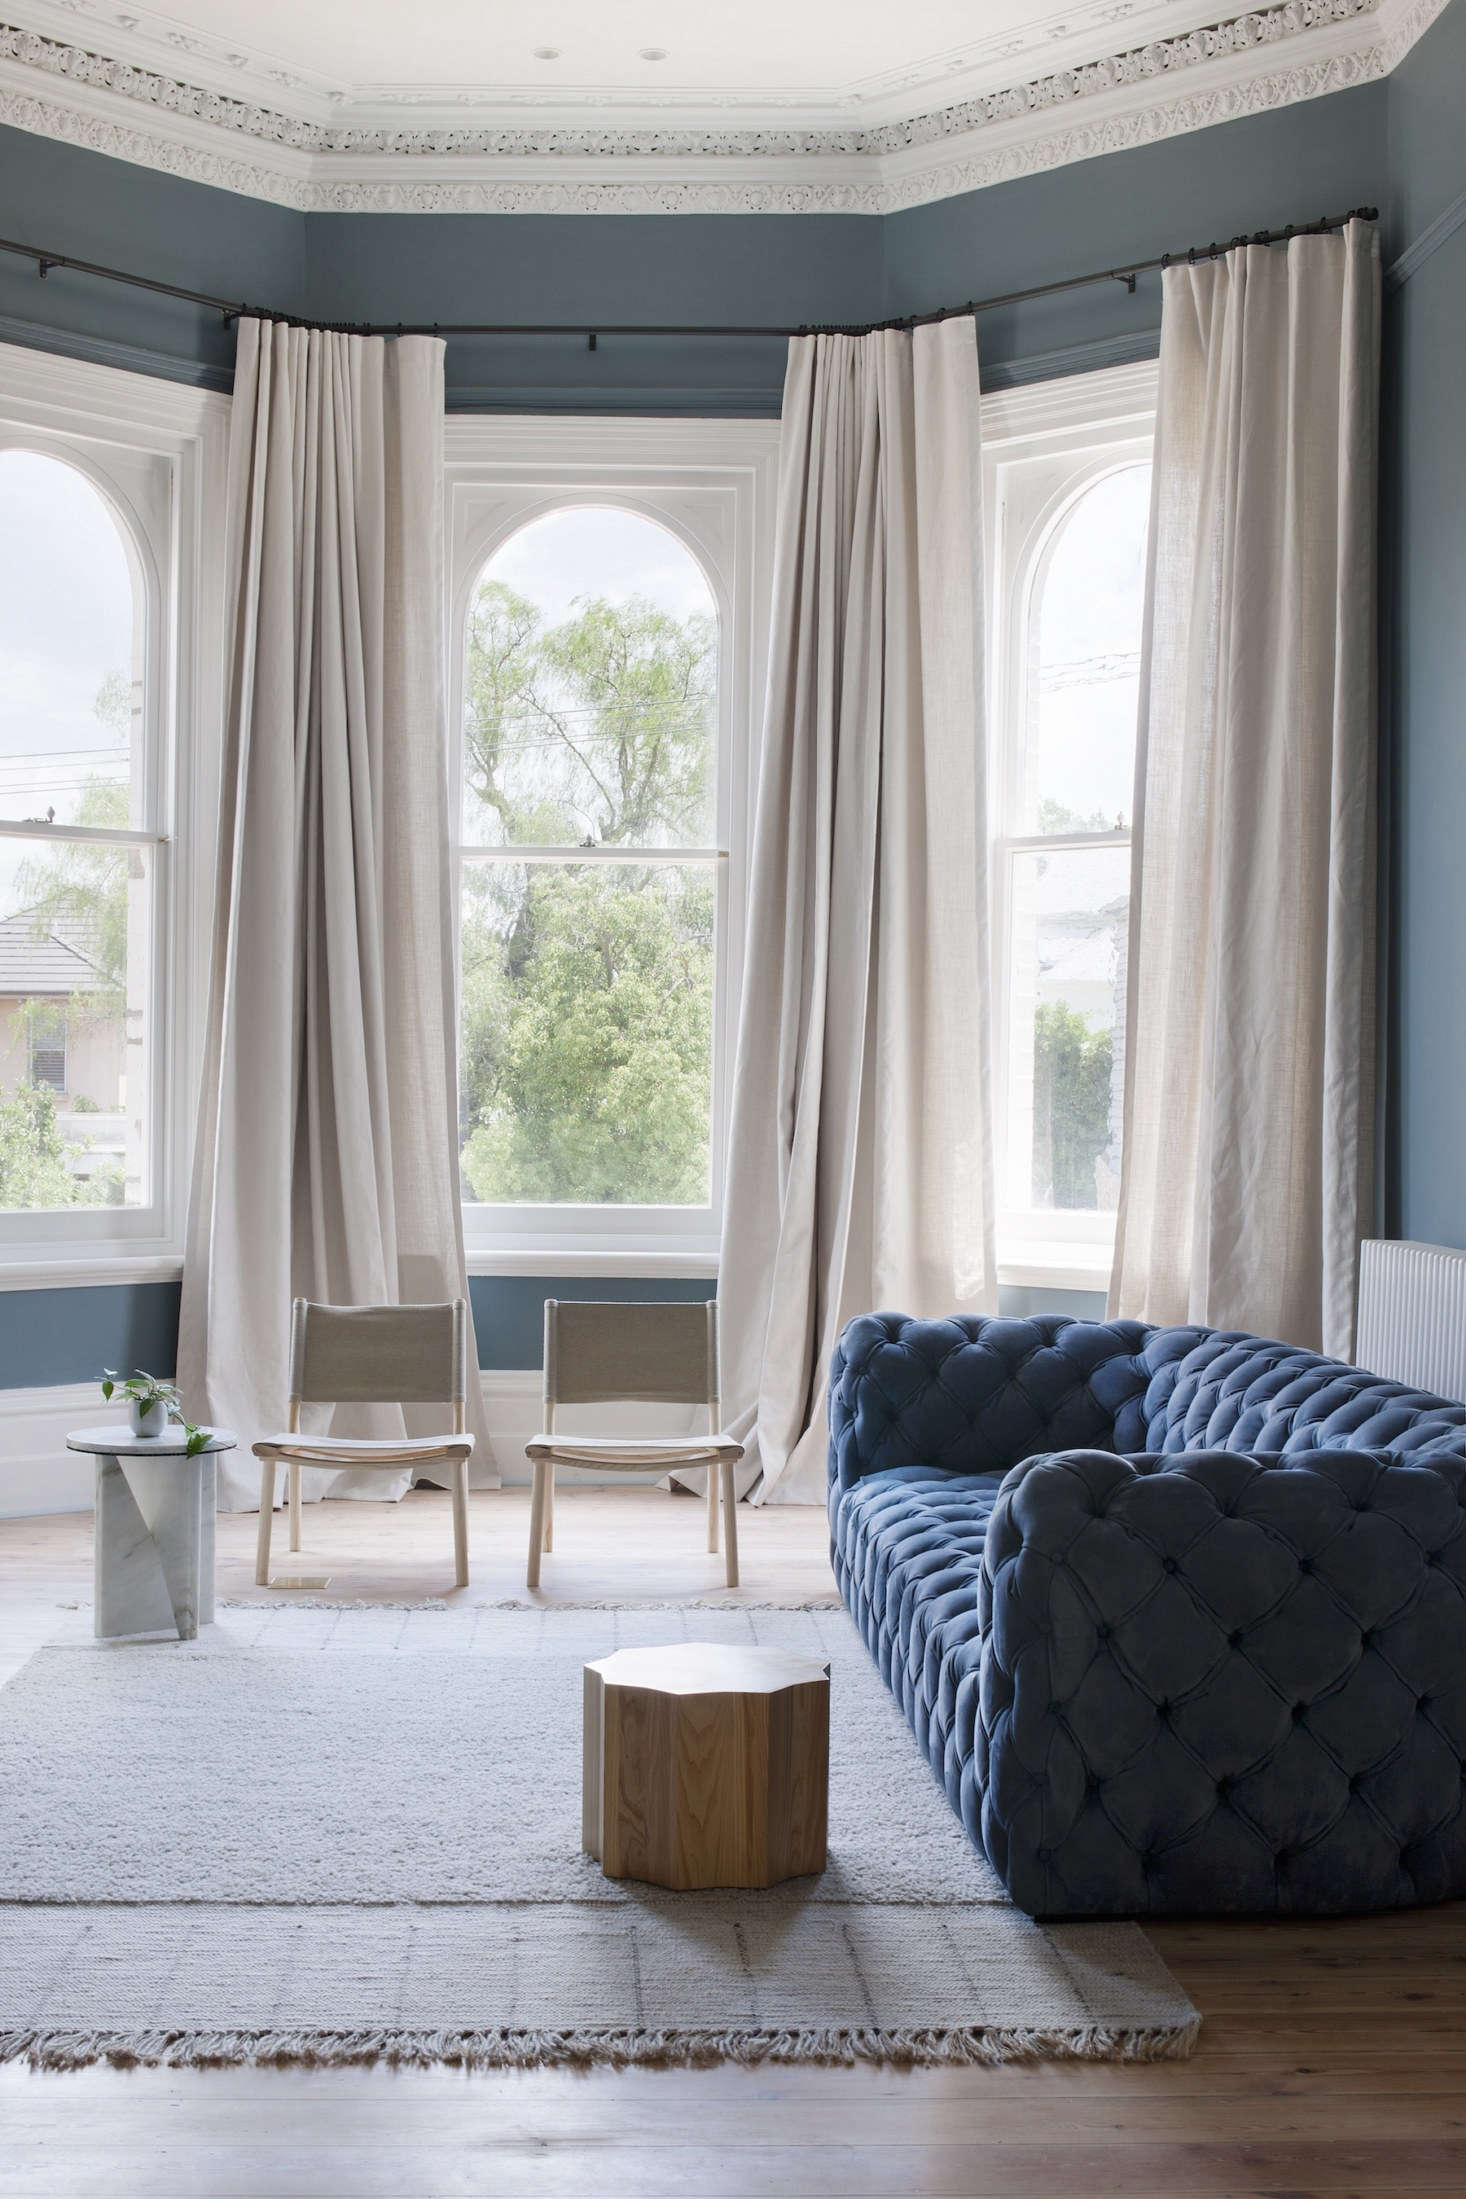 A Paola NavoneChester Moon Sofa in blue anchors the living room. Off-white linen curtains add privacy to the street-facing front room.